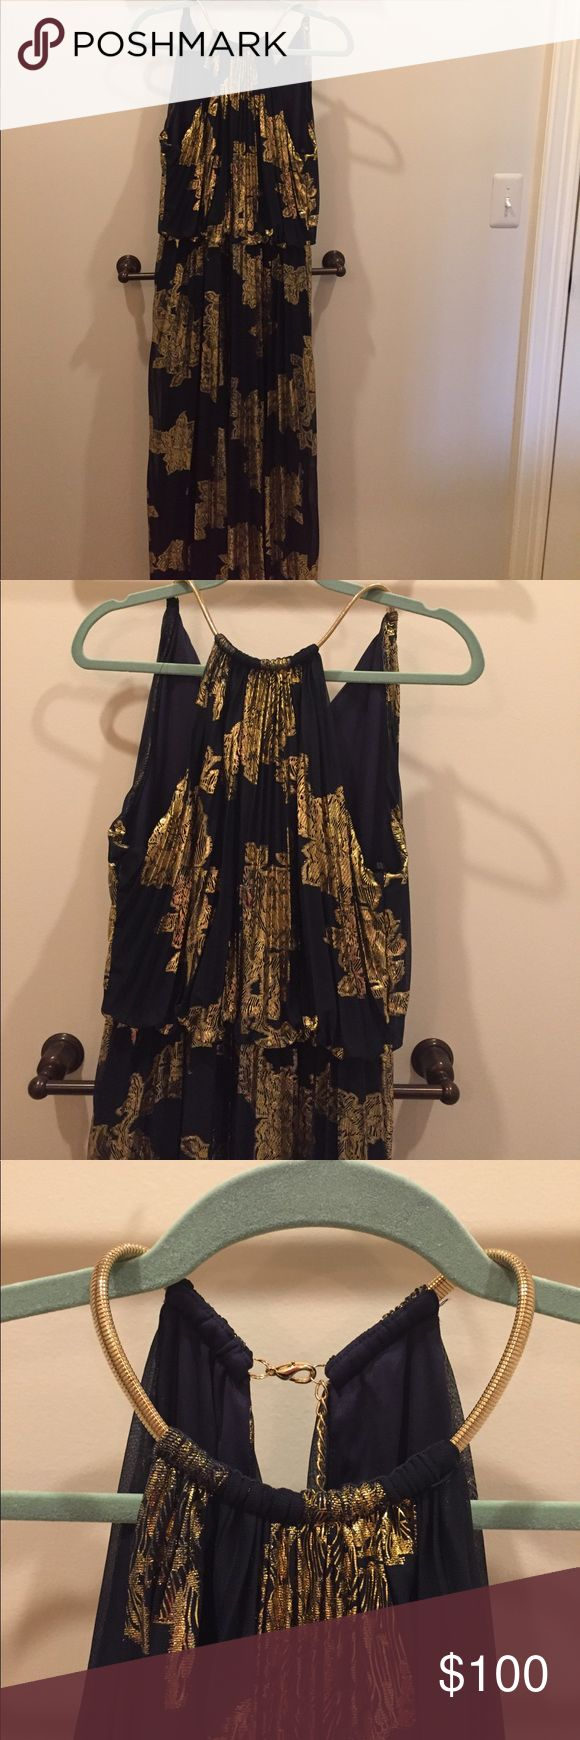 💃 NWOT dress 🎉👗 Brand new!! Pretty dress for occasions ,navy color with gold ,size 14 Xscape Dresses Prom